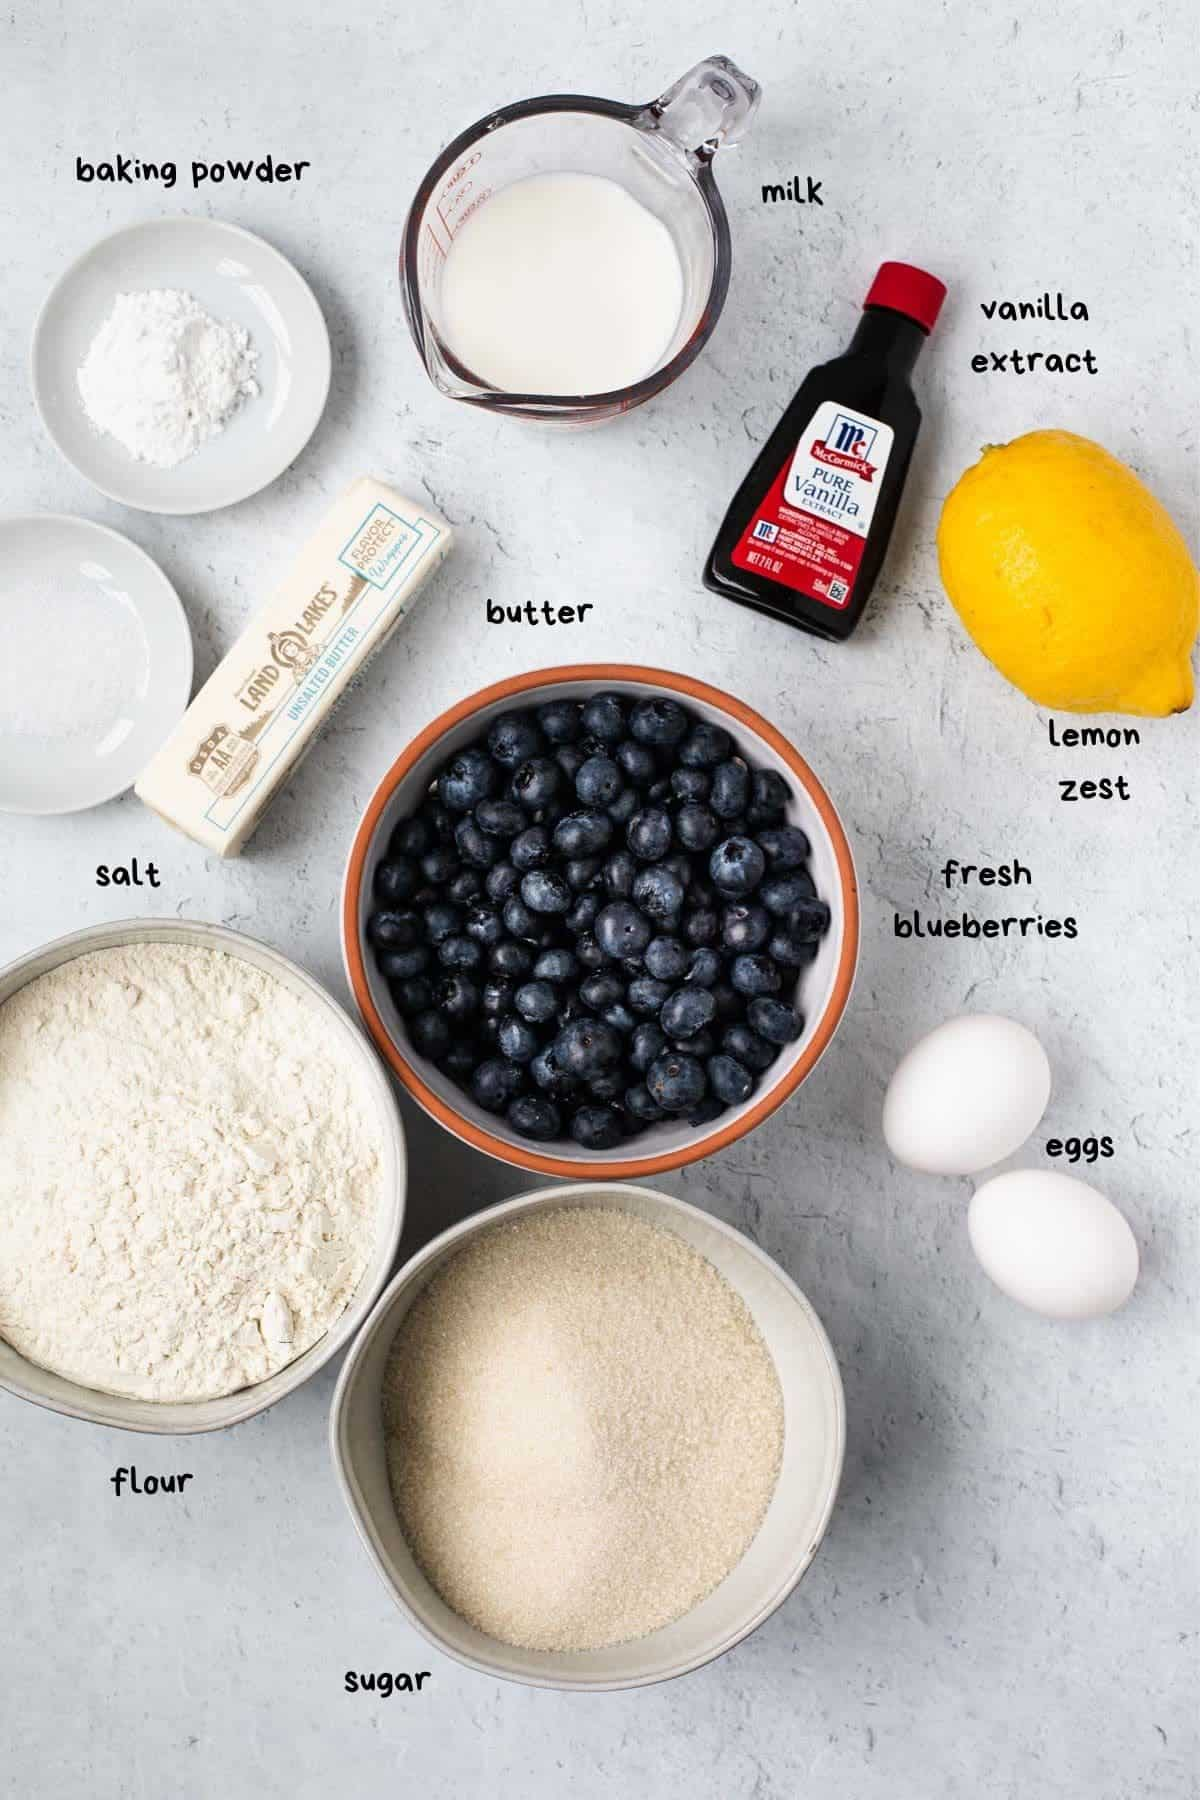 overhead view of recipe ingredients like fresh blueberries and butter